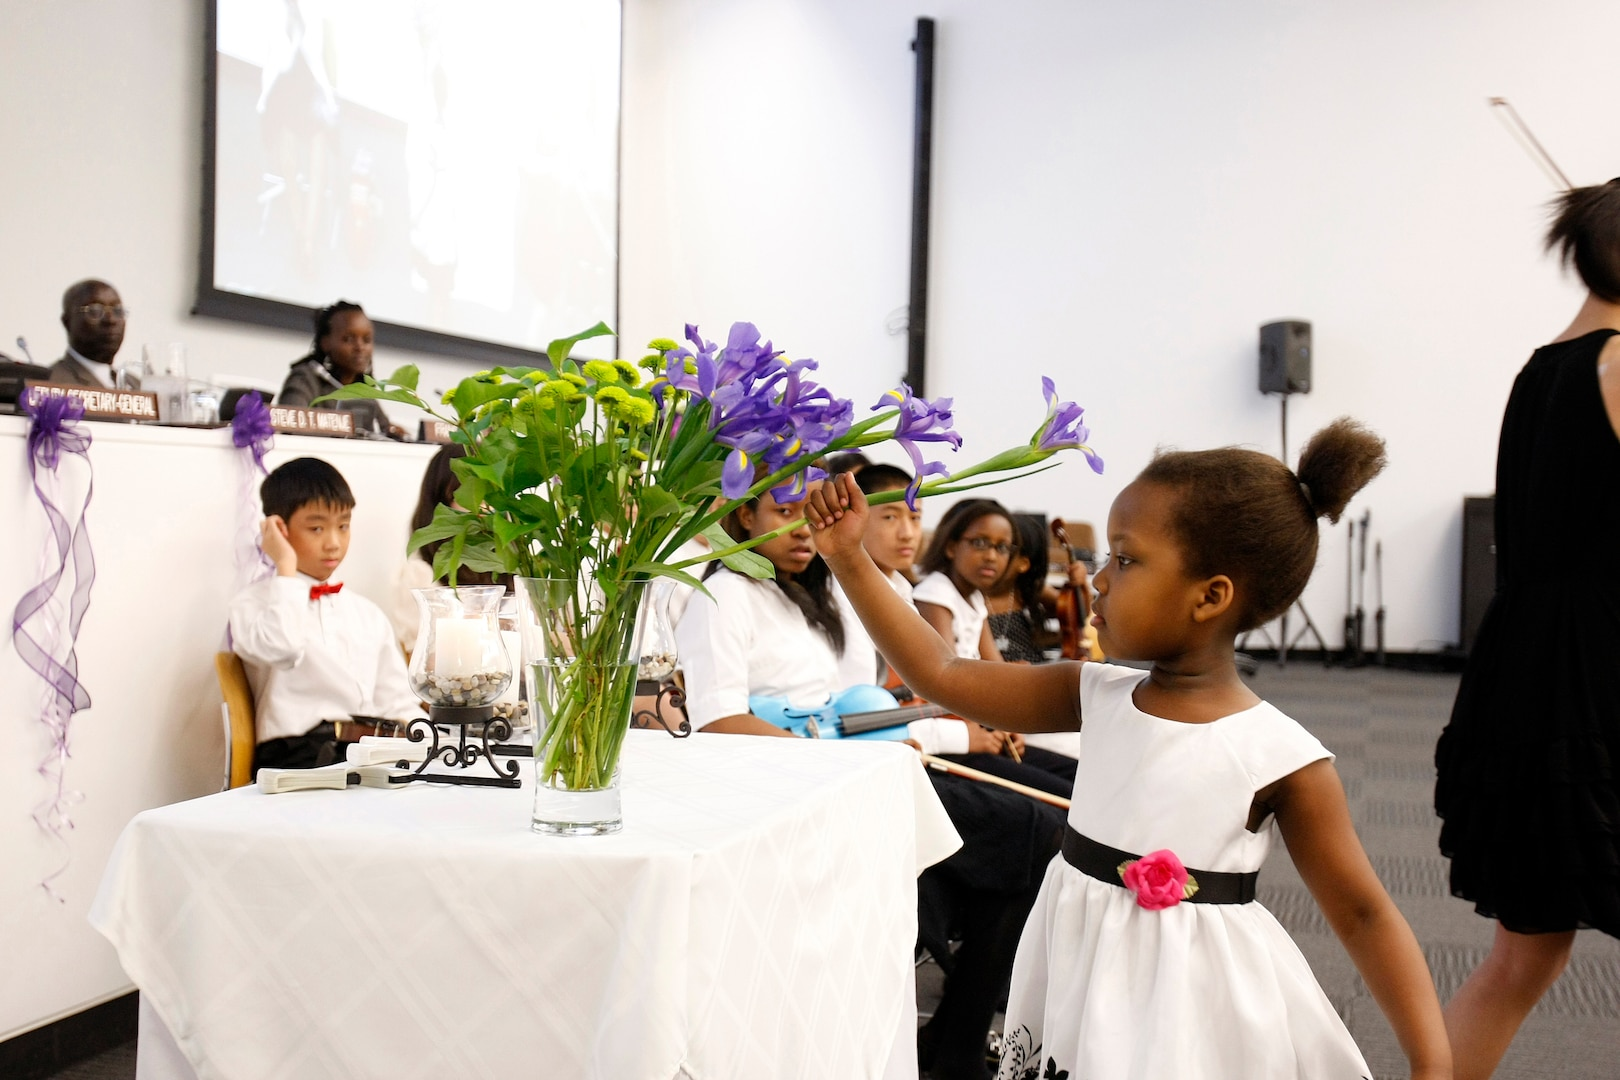 Young girl participates in United Nations Headquarters 16th commemoration of International Day of Reflection on 1994 Genocide in Rwanda, honoring victims of genocide with flowers, United Nations, New York, April 7, 2010 (Courtesy United Nations/Paulo Filgueiras)